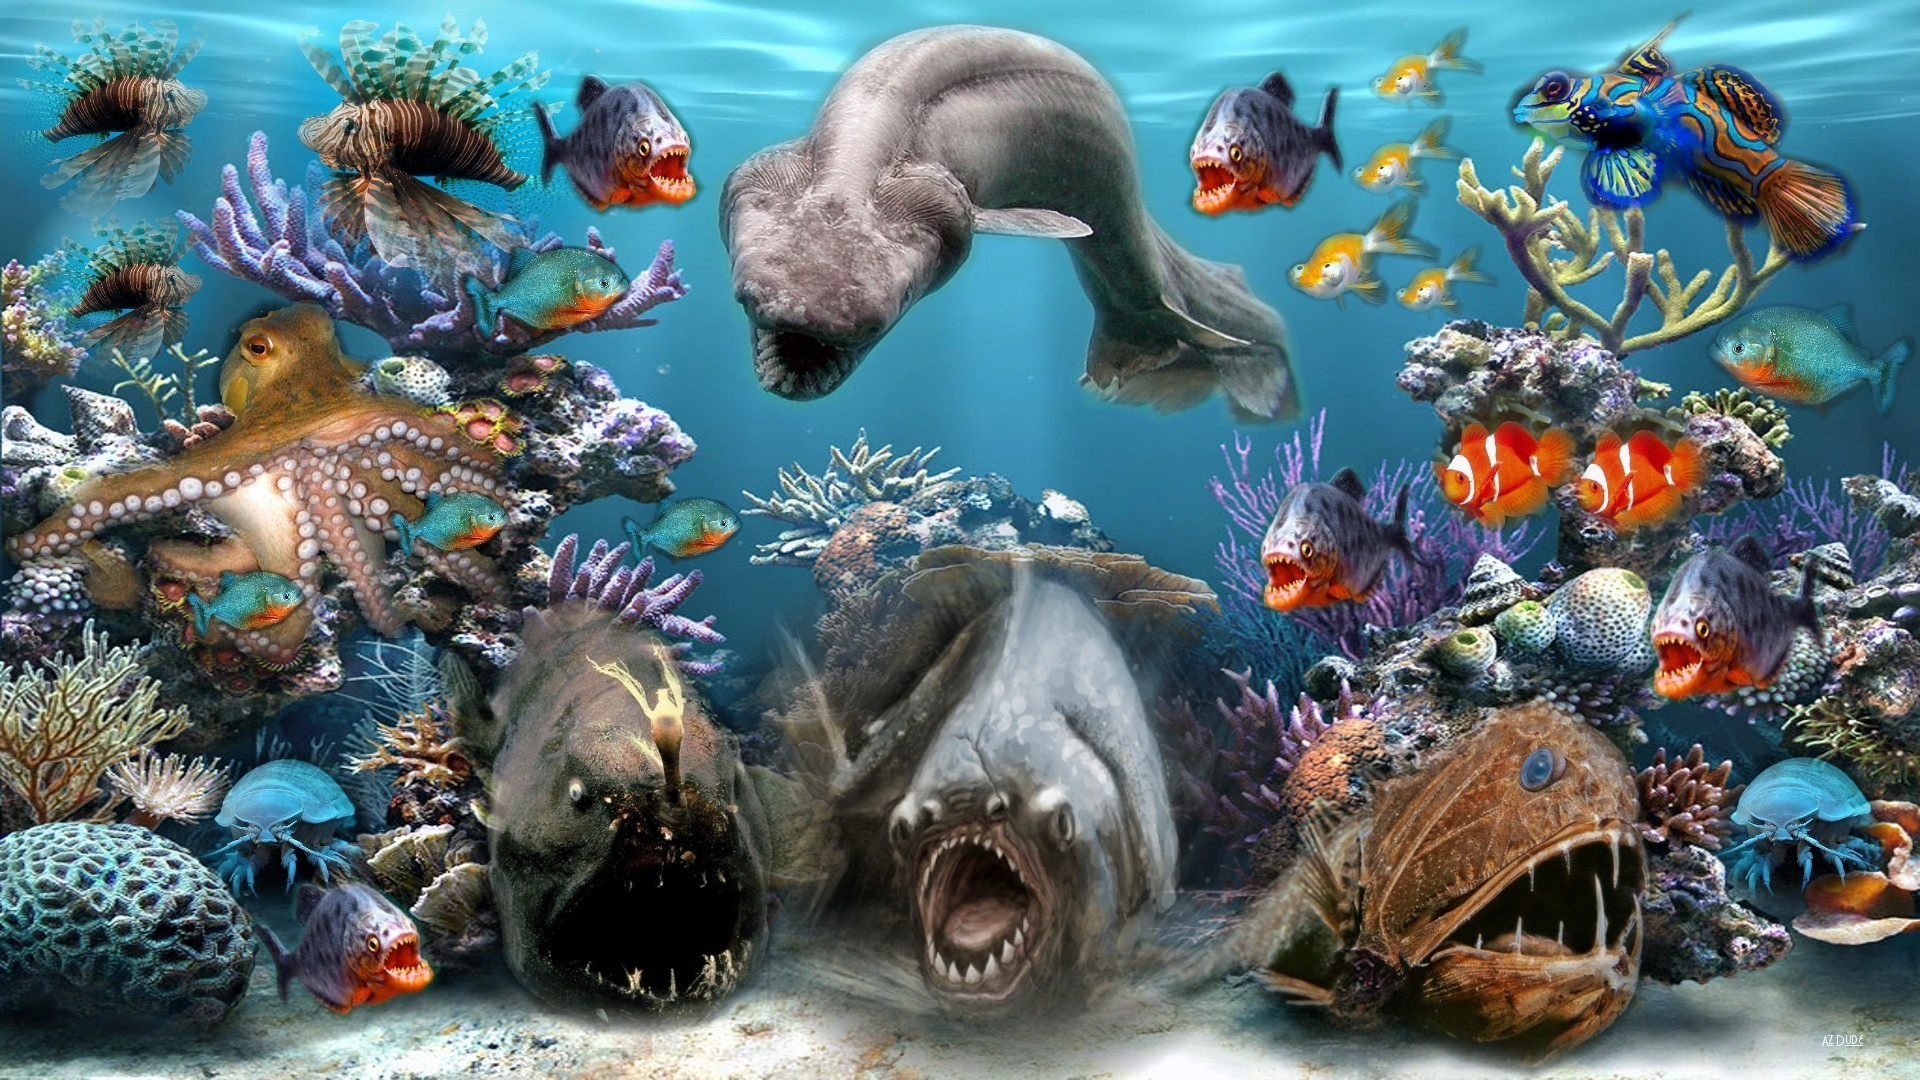 You can download Sea Creature Hd Wallpapers here. Sea Creature Hd Wallpapers  In High Resolution